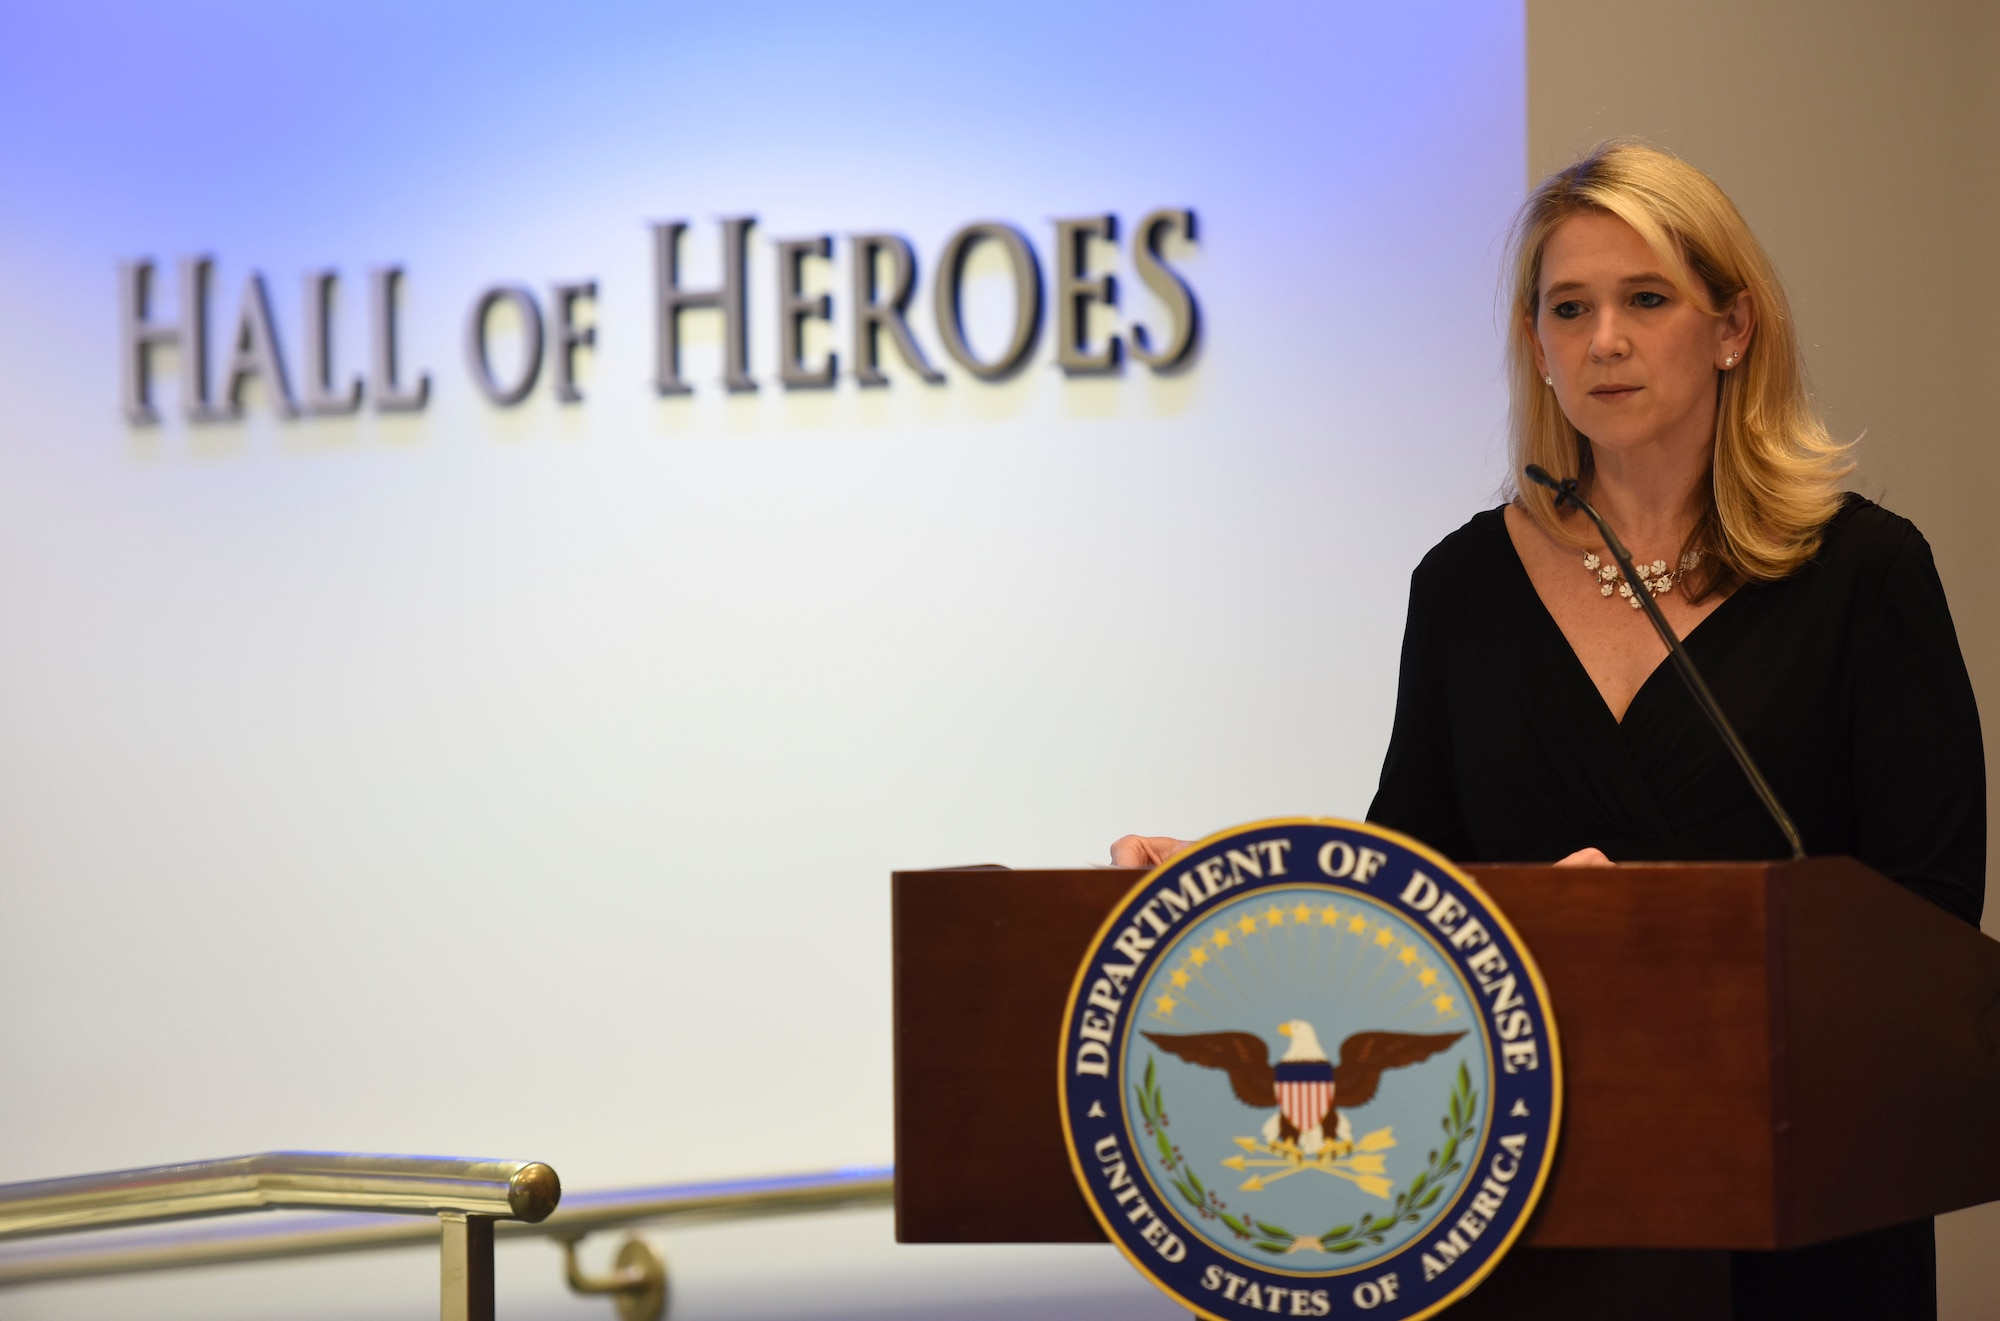 Dr. Elizabeth P. Van Winkle, executive director, Office of Force Resiliency gives her remarks during the 2018 Defense Suicide Prevention Month Recognition Ceremony at the Pentagon, in Arlington, Va., May 15, 2019. Van Winkle is the principal staff advisor to the Under Secretary of Defense for Personnel and Readiness. (U.S. Air Force photo by Tech Sgt. Anthony Nelson Jr.)